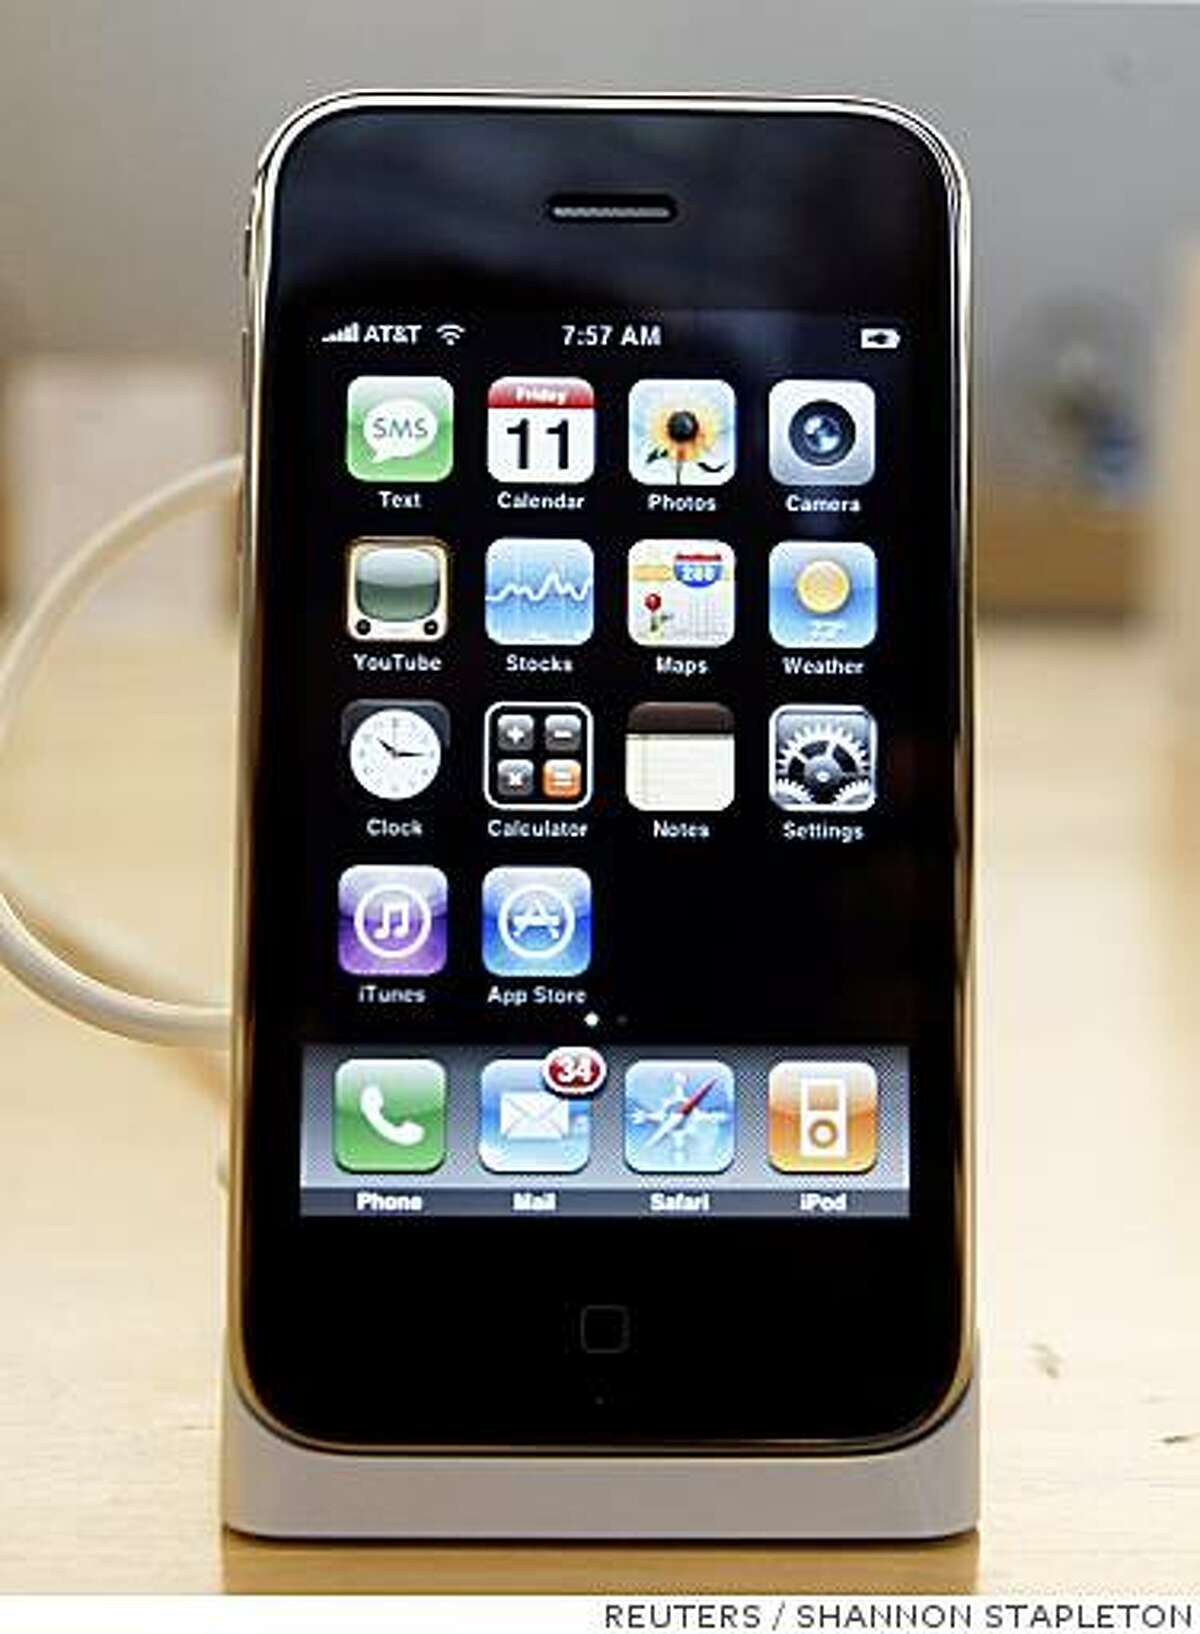 The new iPhone 3G is seen at the Apple Store in New York July 11, 2008. The new iPhone is expected to attract hordes of buyers when it goes on sale on Friday in more than 20 countries and regions, helping Apple Inc. handily beat its target to sell 10 million of them by the end of 2008. REUTERS/Shannon Stapleton (UNITED STATES)